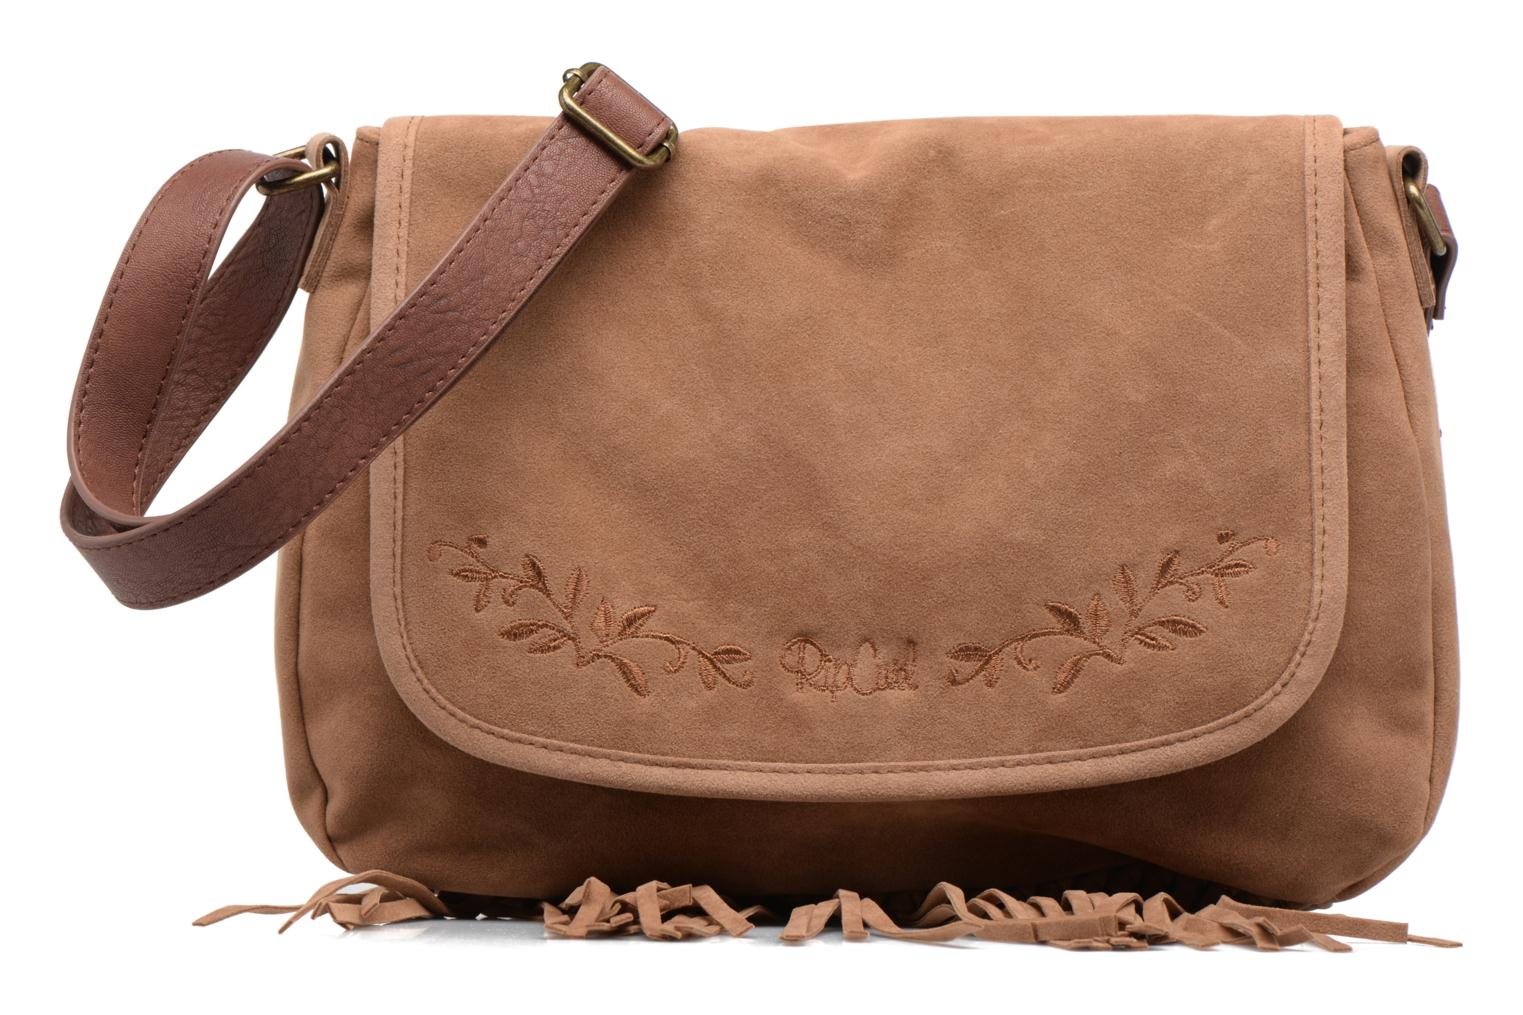 Sacs à main Rip Curl Talamanca suede Shoulder bag Marron vue détail/paire